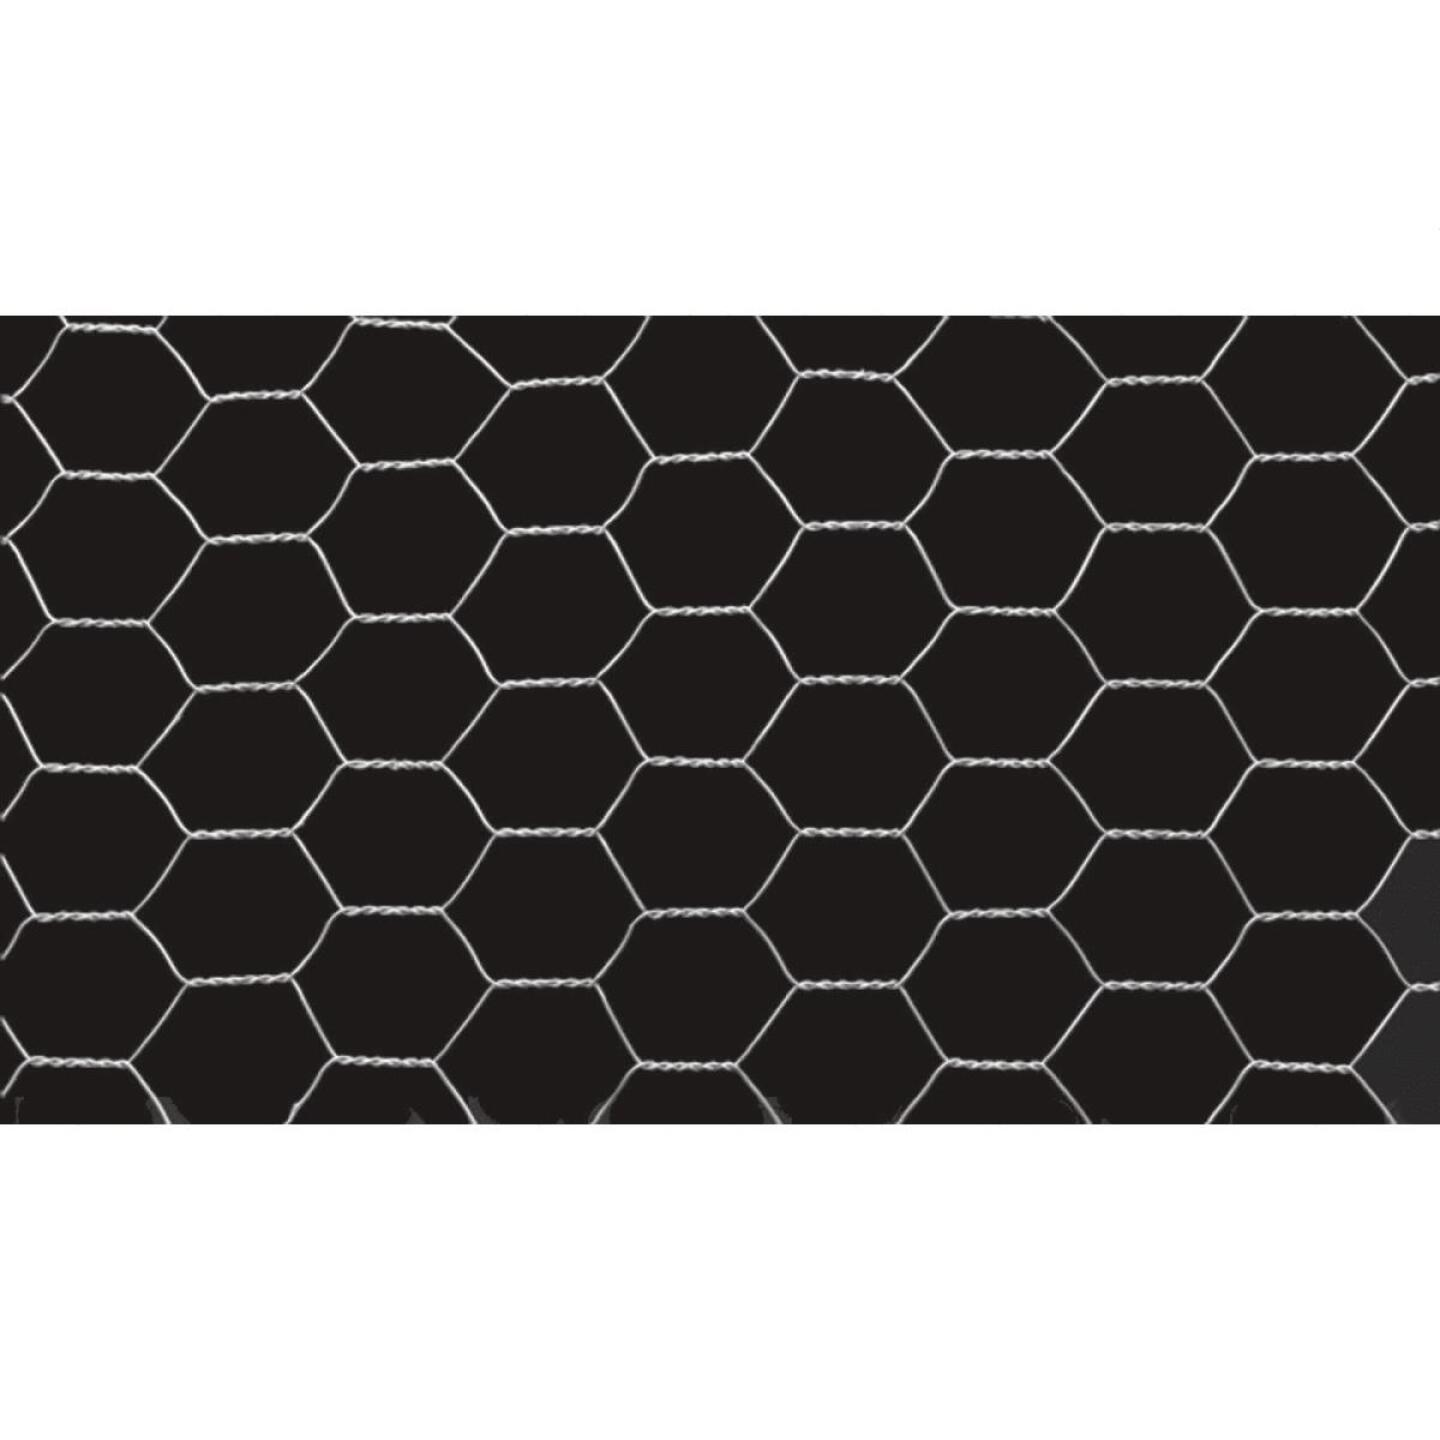 1 In. x 72 In. H. x 50 Ft. L. Hexagonal Wire Poultry Netting Image 3